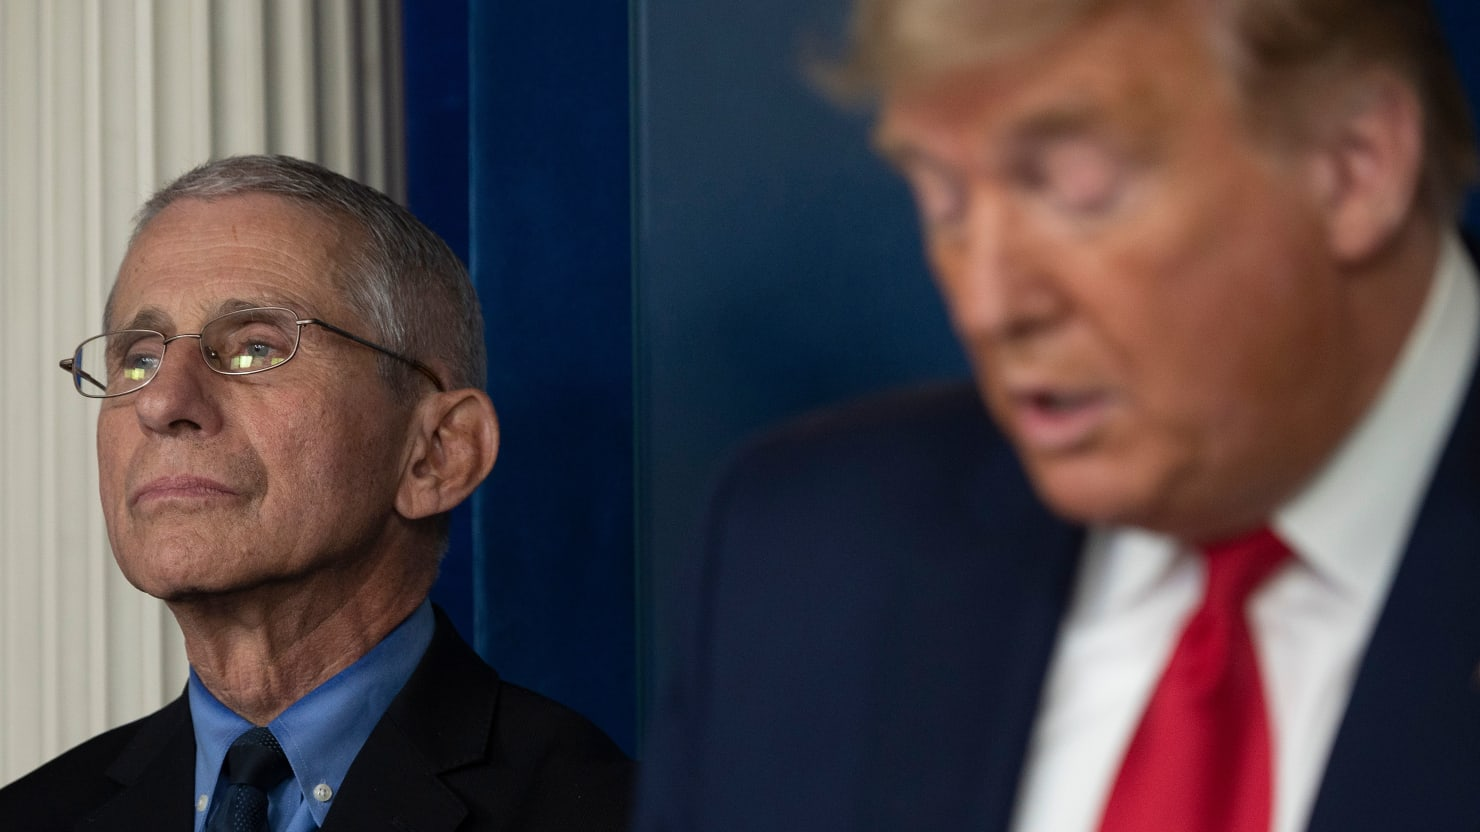 Fauci Becomes Target of Pro-Trump Disinformation Op